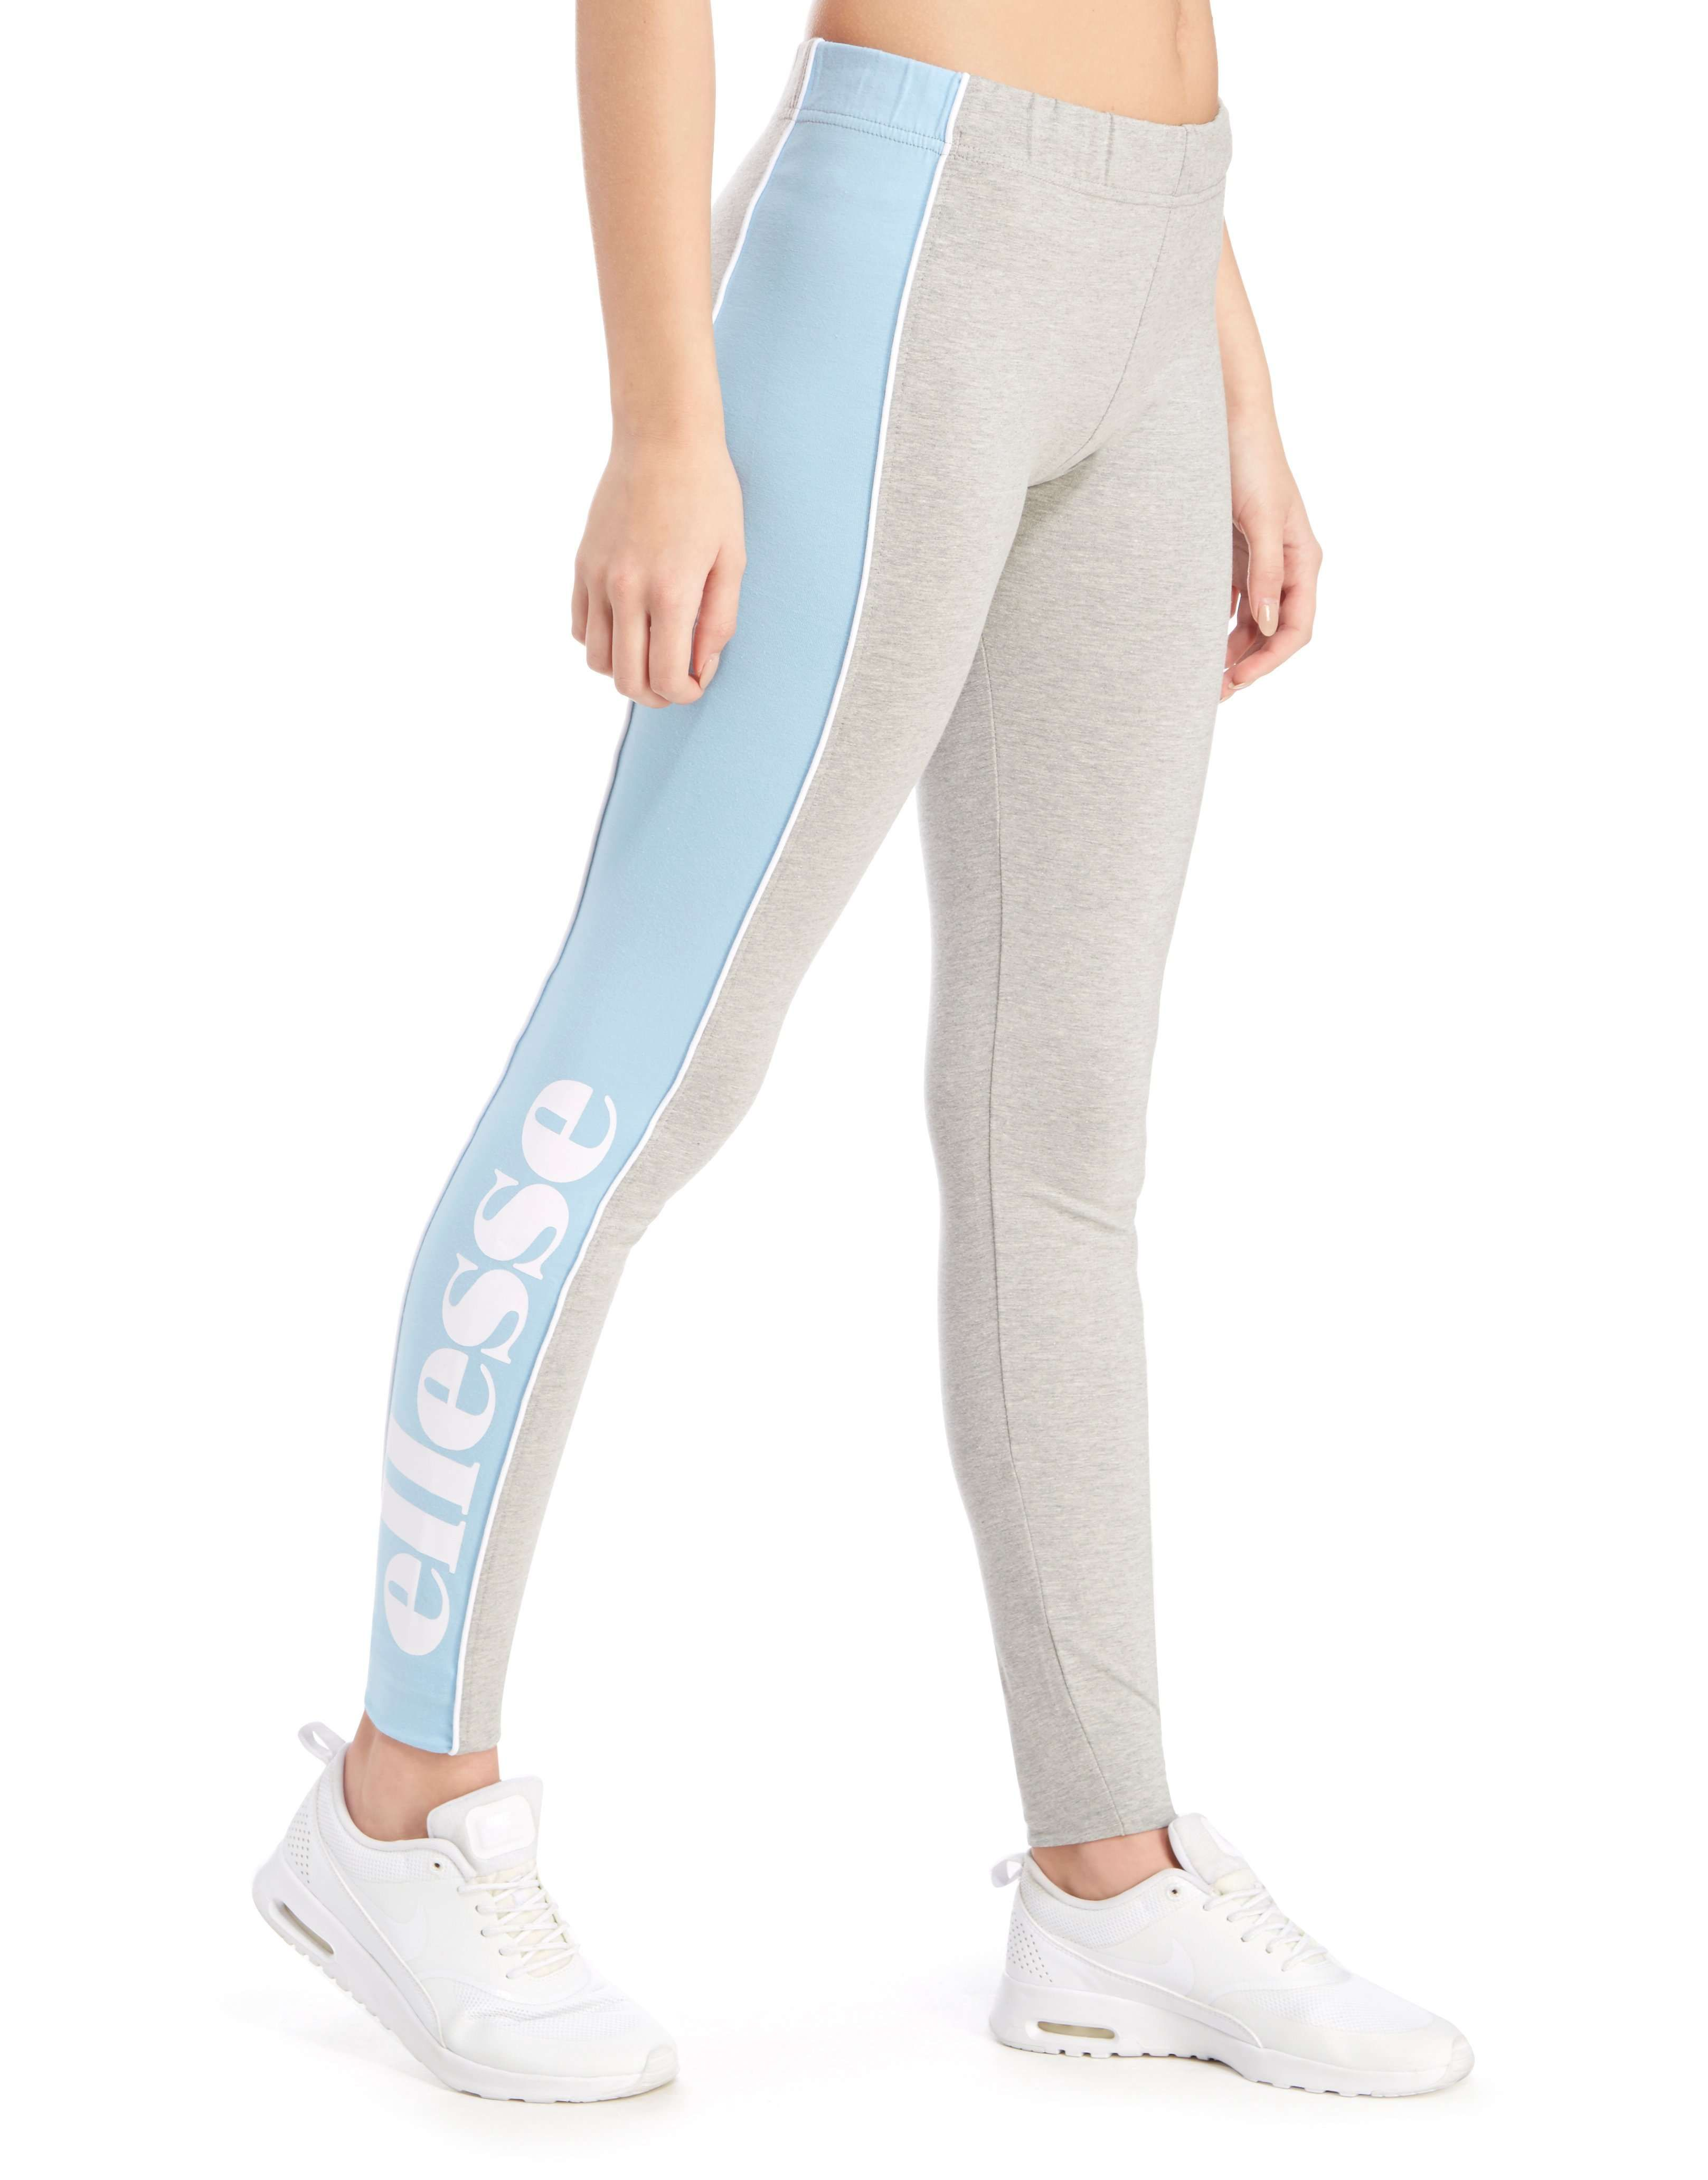 Ellesse Rosula Leggings - Shop online for Ellesse Rosula Leggings with JD  Sports 4fd850e09c0